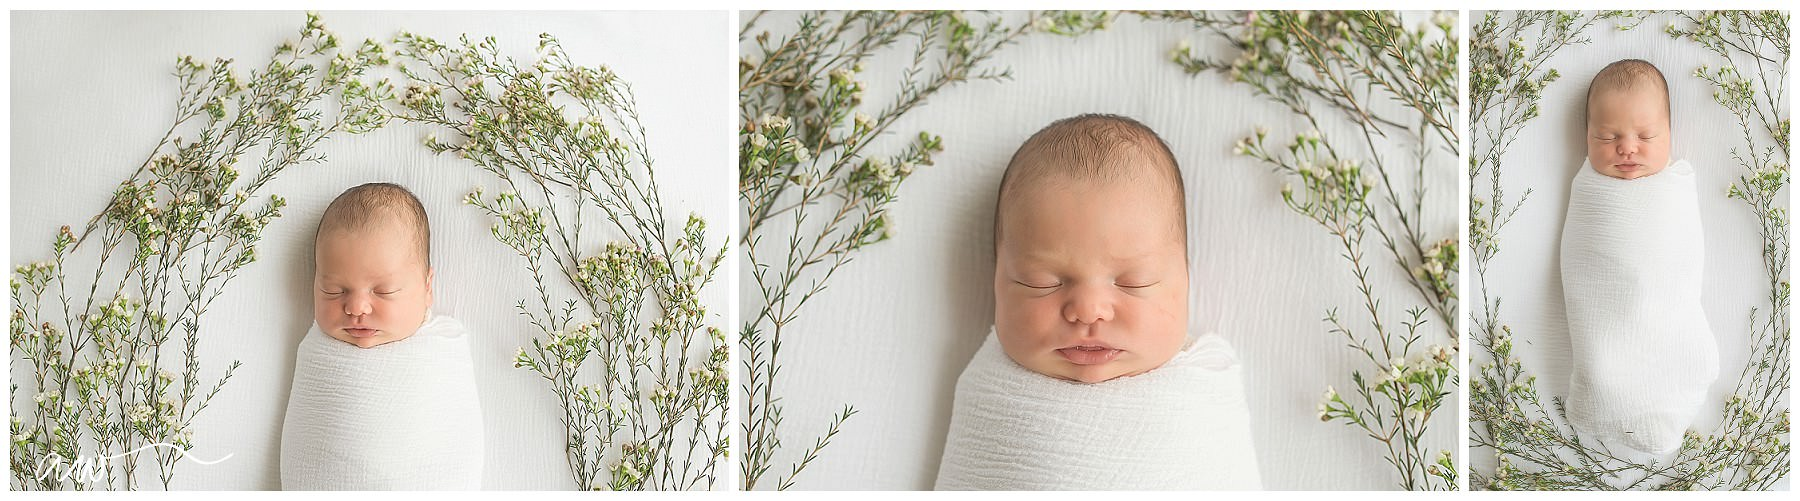 South Tampa Newborn Photographer